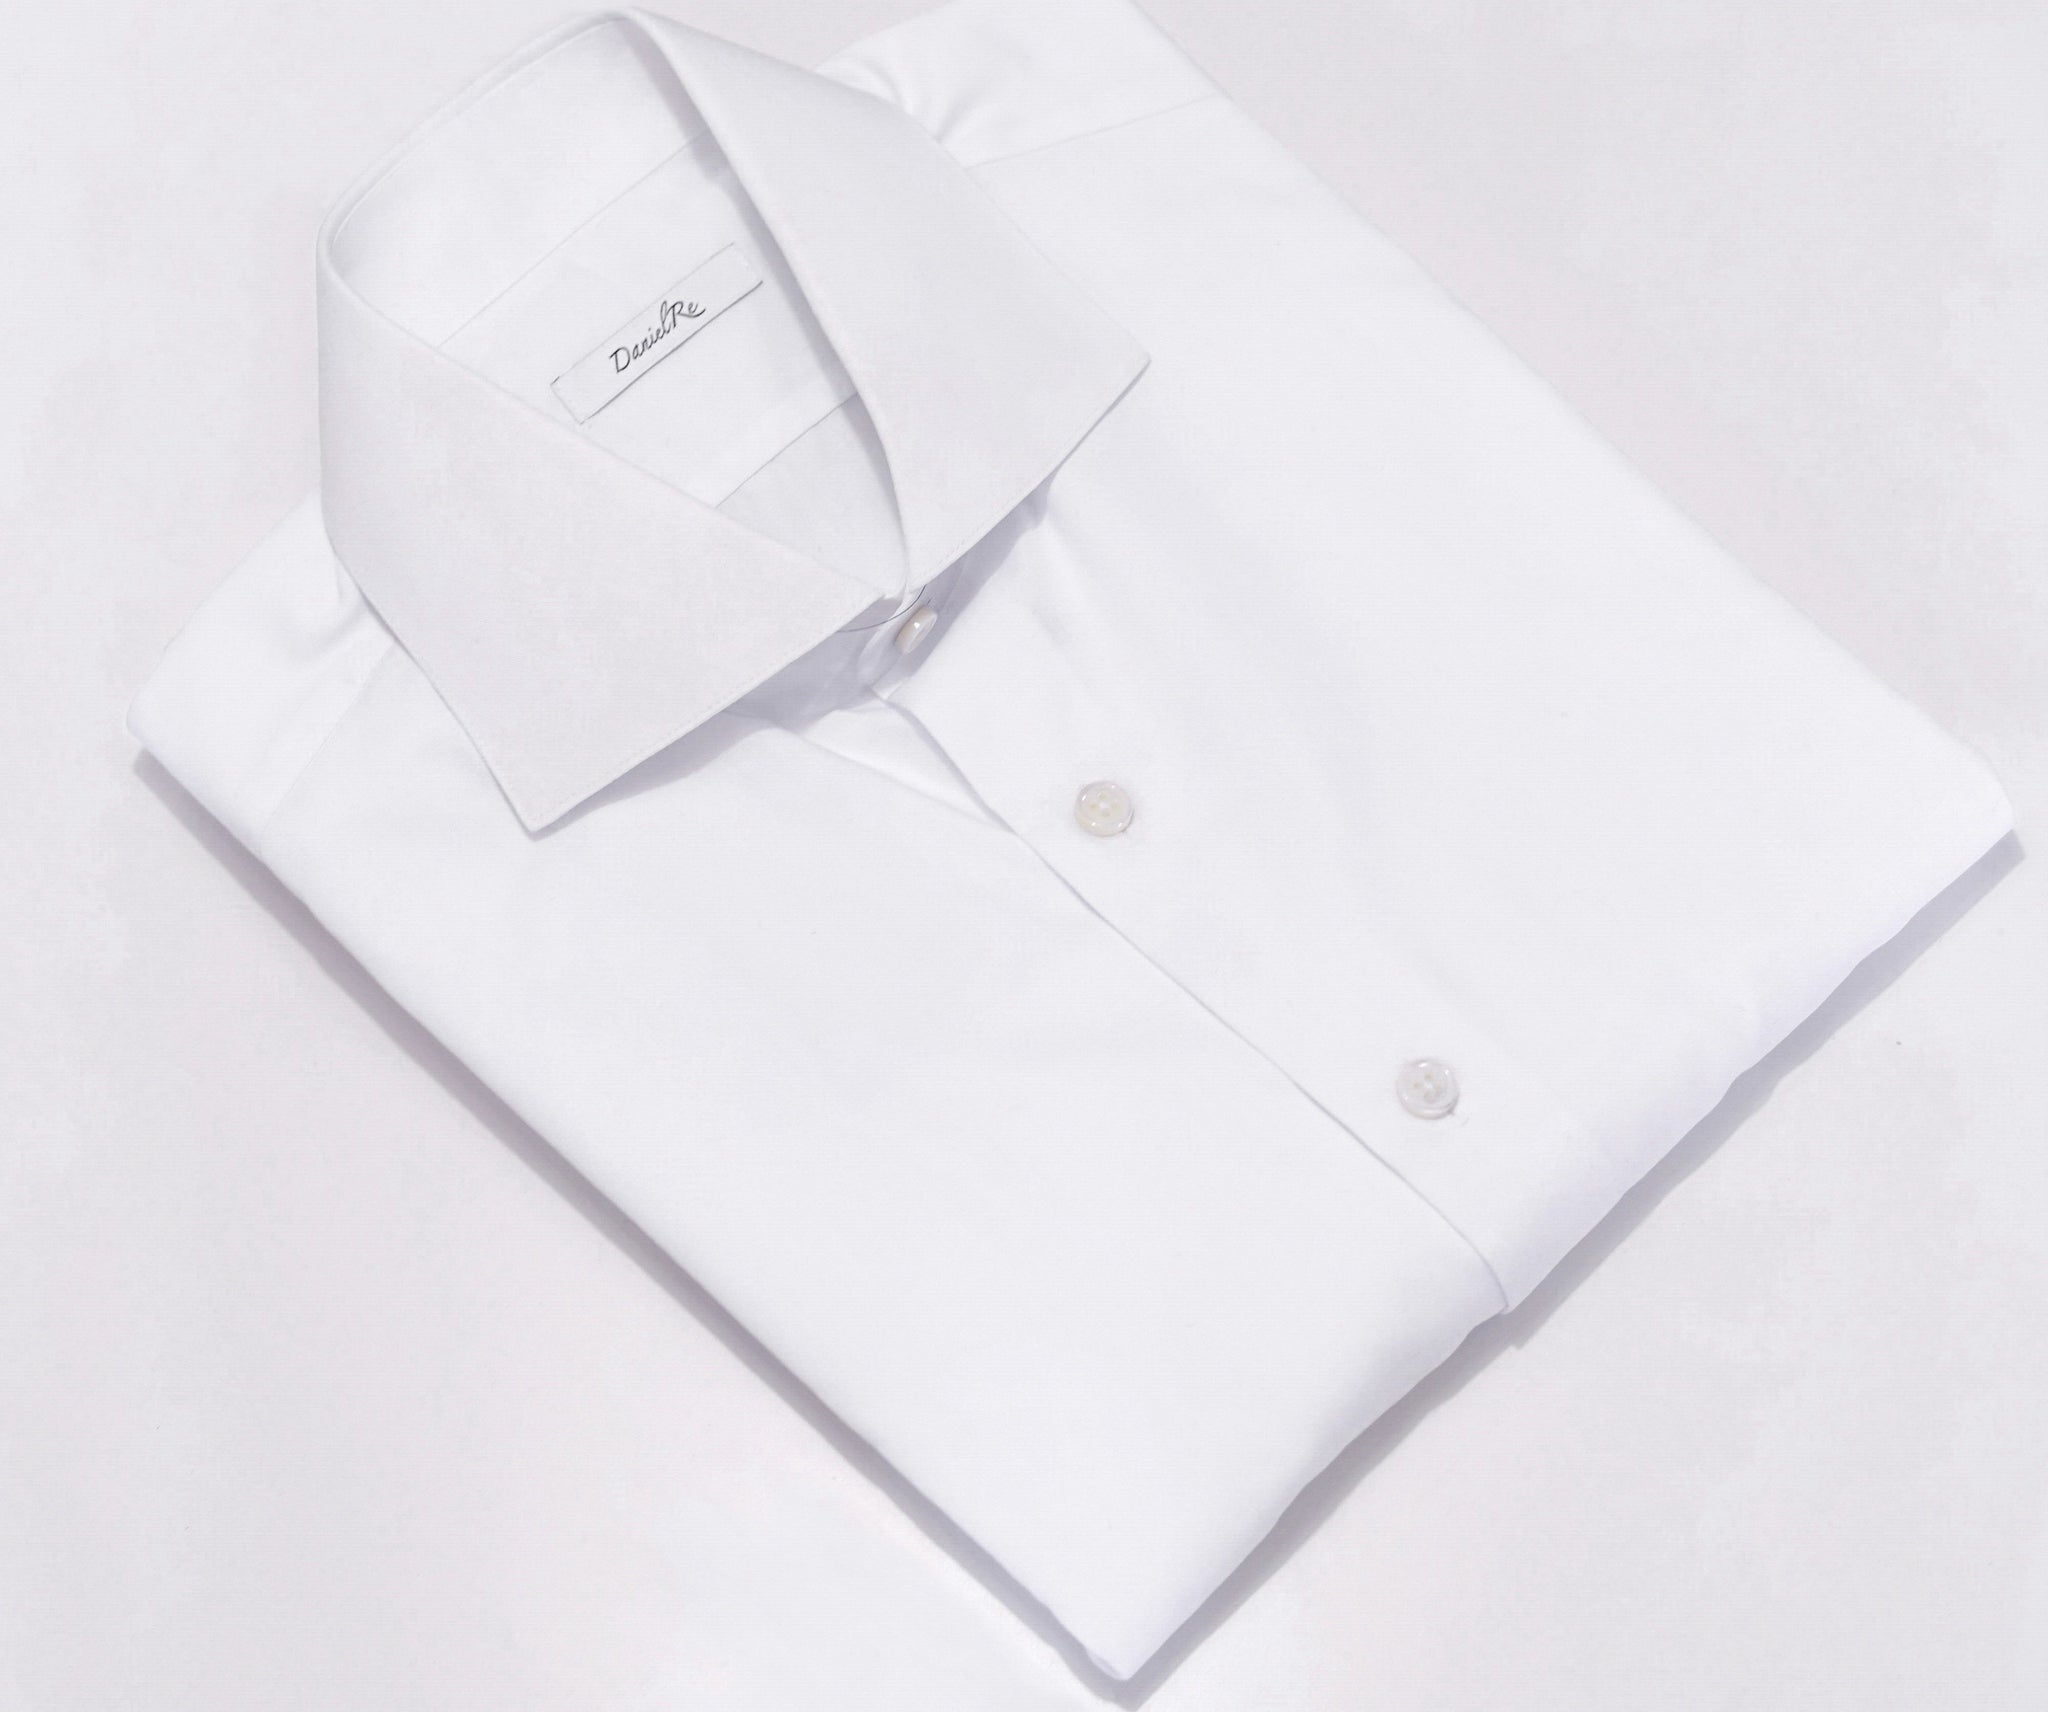 Danielre Timeless White Shirt